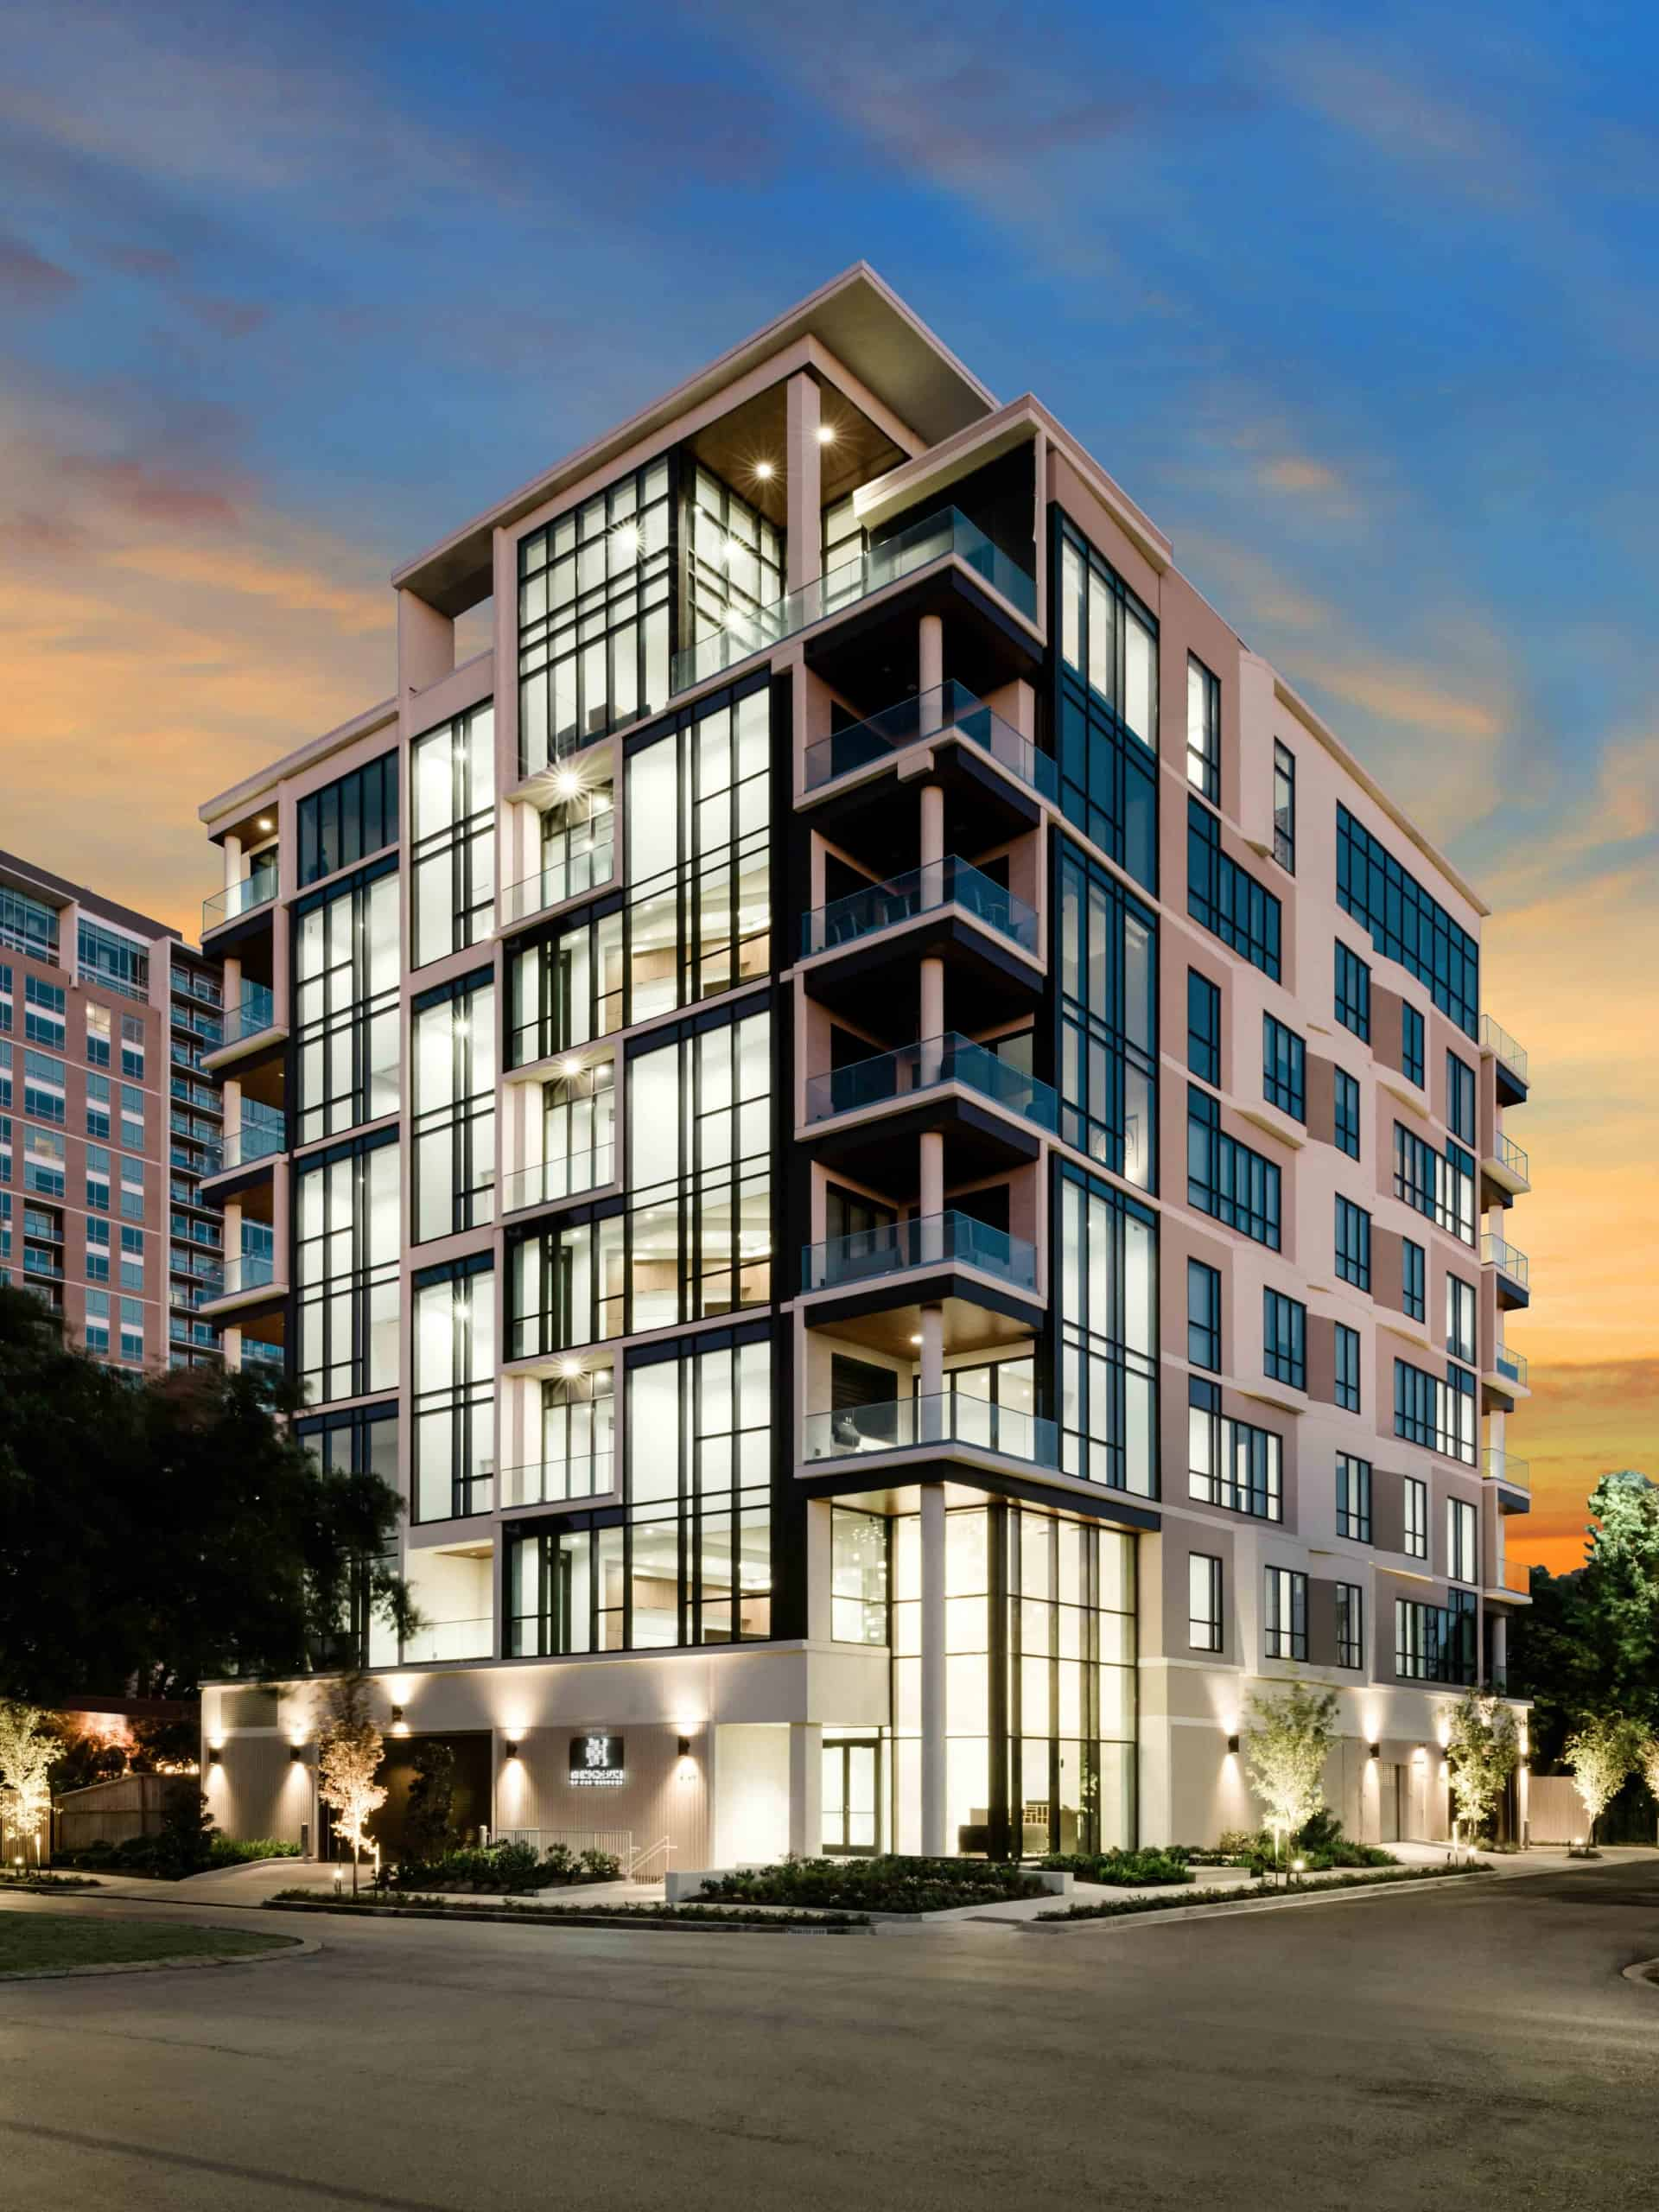 the mondrian luxury apartments in hermann park of houston with a sunset sky in the background